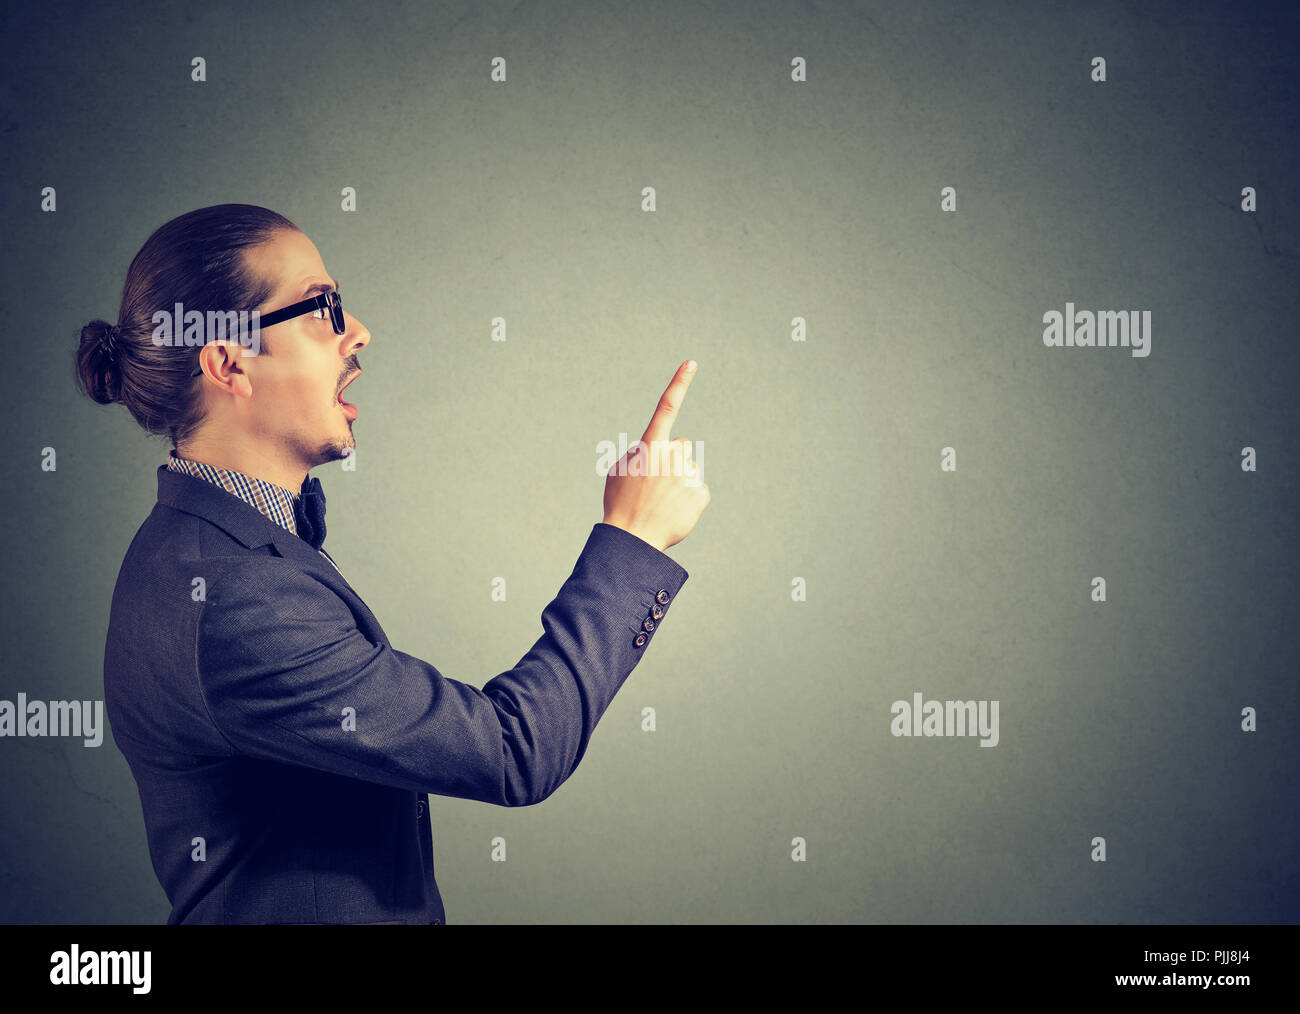 Side view of business man in holding finger up having bright idea on gray background - Stock Image